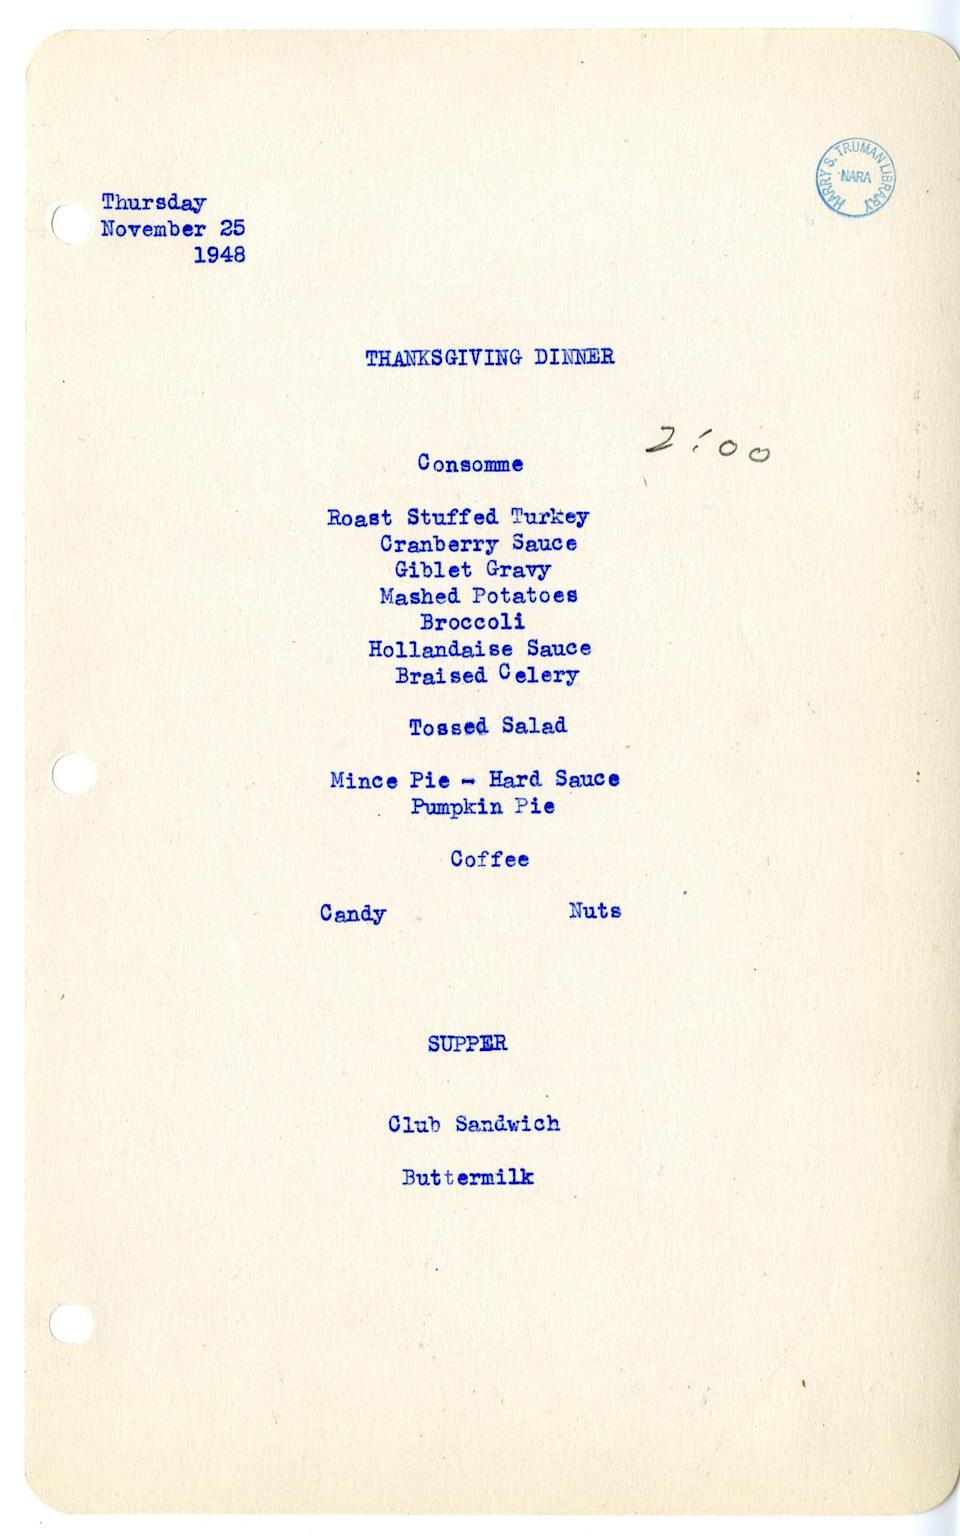 """<p>President Truman's Thanksgiving spread in 1948 mostly featured standard holiday fare — <span>roast stuffed turkey</span>, <a href=""""https://www.yahoo.com/food/easy-cranberry-sauce-from-the-food-lab-204227265.html"""" data-ylk=""""slk:cranberry sauce;outcm:mb_qualified_link;_E:mb_qualified_link;ct:story;"""" class=""""link rapid-noclick-resp yahoo-link"""">cranberry sauce</a>, and <a href=""""https://www.yahoo.com/food/mashed-potato-recipes-thanksgiving-134619327/photo-make-ahead-mashed-potatoes-1447852398525.html"""" data-ylk=""""slk:mashed potatoes;outcm:mb_qualified_link;_E:mb_qualified_link;ct:story;"""" class=""""link rapid-noclick-resp yahoo-link"""">mashed potatoes</a>, to name a few classics — but the second meal at the bottom caught our attention. Apparently President Truman wasn't so stuffed after Thanksgiving dinner for a spot of supper, which in this case was a club sandwich and (gulp!) a glass of buttermilk. <i><i><i>(Photo: Harry S. Truman Presidential Library and Museum/NARA)</i></i></i></p>"""